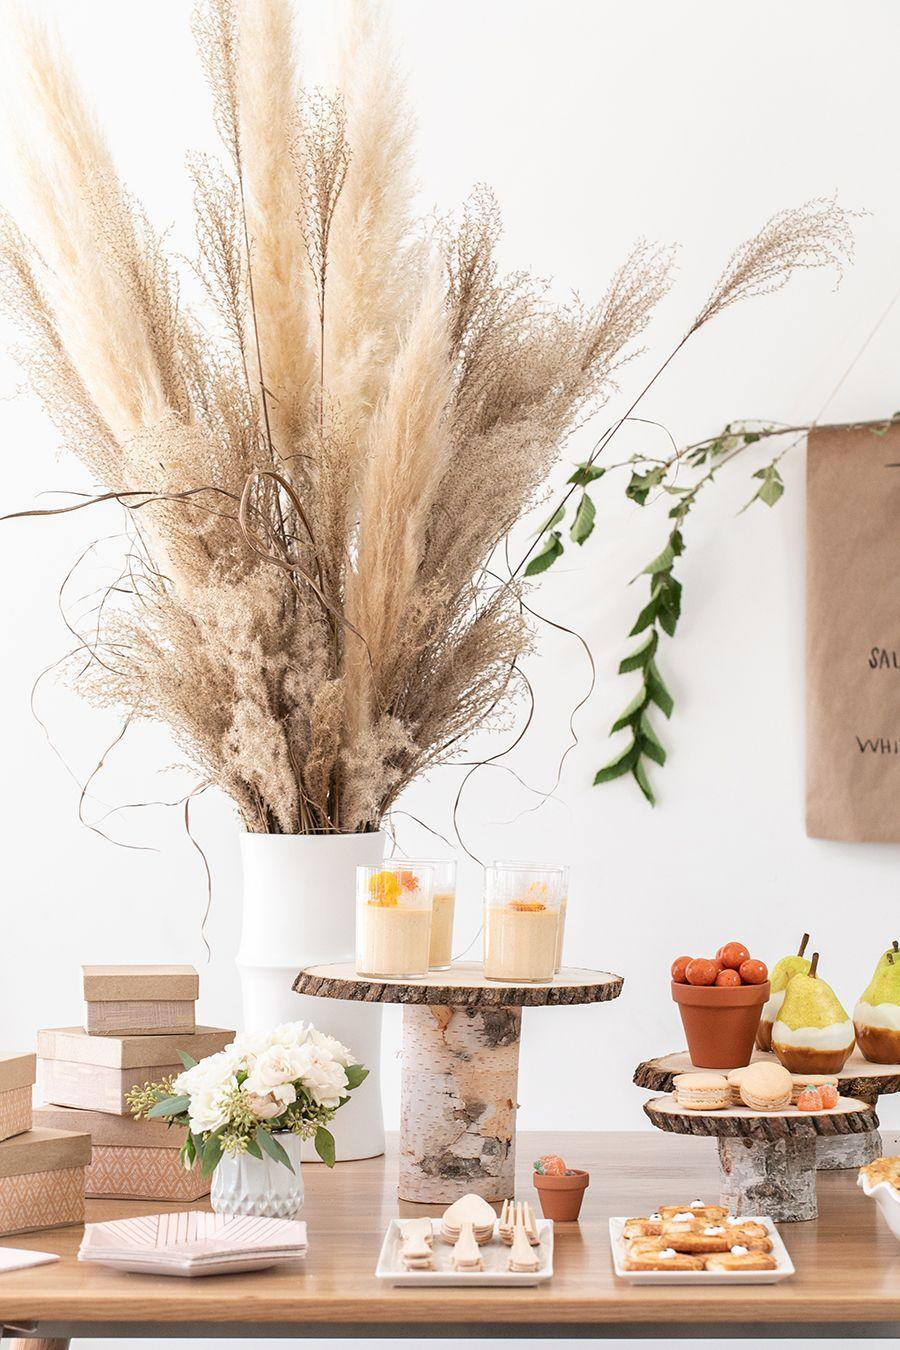 """<p>Dried reeds and grasses make for a totally unexpected Thanksgiving centerpiece. Evoking the earthiness of the fall season, their muted tones and subdued color palette is sure to elicit more than a few <em>ooh</em>s and <em>aah</em>s from your guests.</p><p><strong>Get the tutorial at <a href=""""https://sugarandcharm.com/diy-thanksgiving-dessert-table"""" rel=""""nofollow noopener"""" target=""""_blank"""" data-ylk=""""slk:Sugar and Charm"""" class=""""link rapid-noclick-resp"""">Sugar and Charm</a>.</strong></p><p><a class=""""link rapid-noclick-resp"""" href=""""https://www.amazon.com/Dongliflower-Natural-Pampas-Plumes-Wedding/dp/B07P8PX592?tag=syn-yahoo-20&ascsubtag=%5Bartid%7C10050.g.2130%5Bsrc%7Cyahoo-us"""" rel=""""nofollow noopener"""" target=""""_blank"""" data-ylk=""""slk:SHOP DRIED REEDS"""">SHOP DRIED REEDS</a></p>"""